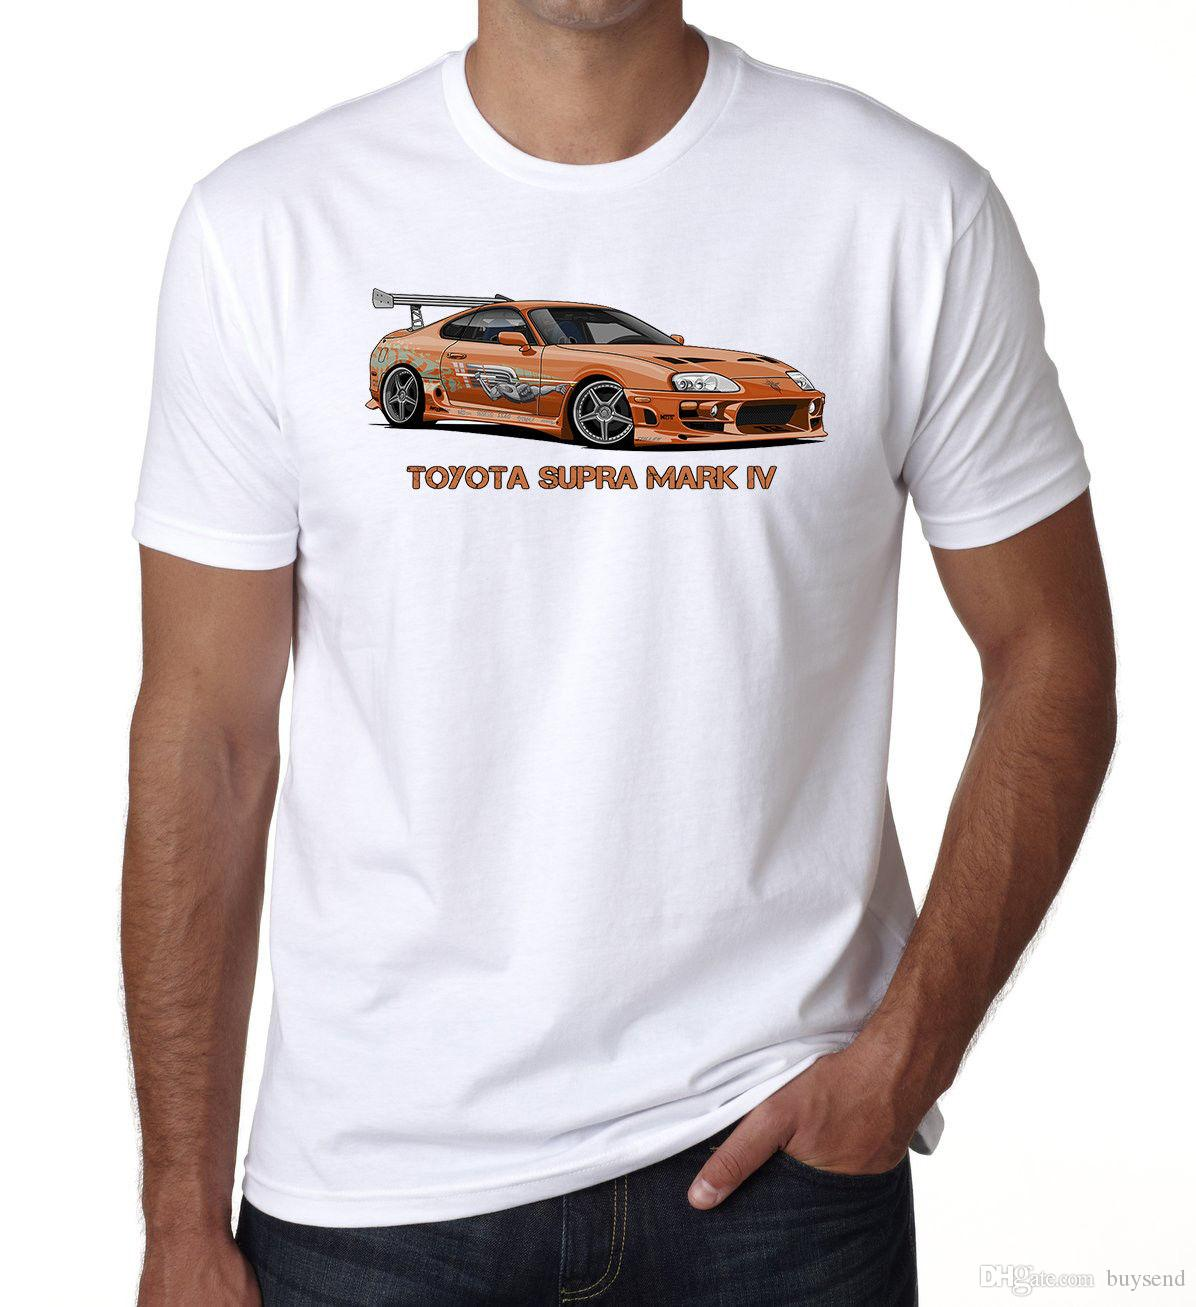 41b3a6e8411 Top Tee Supra Mark IV Top Tee Mens T Shirt Kids Fast N Furious White  TshirtDT Tee Shirts For Sale Random T Shirts From Buysend, $10.03|  DHgate.Com